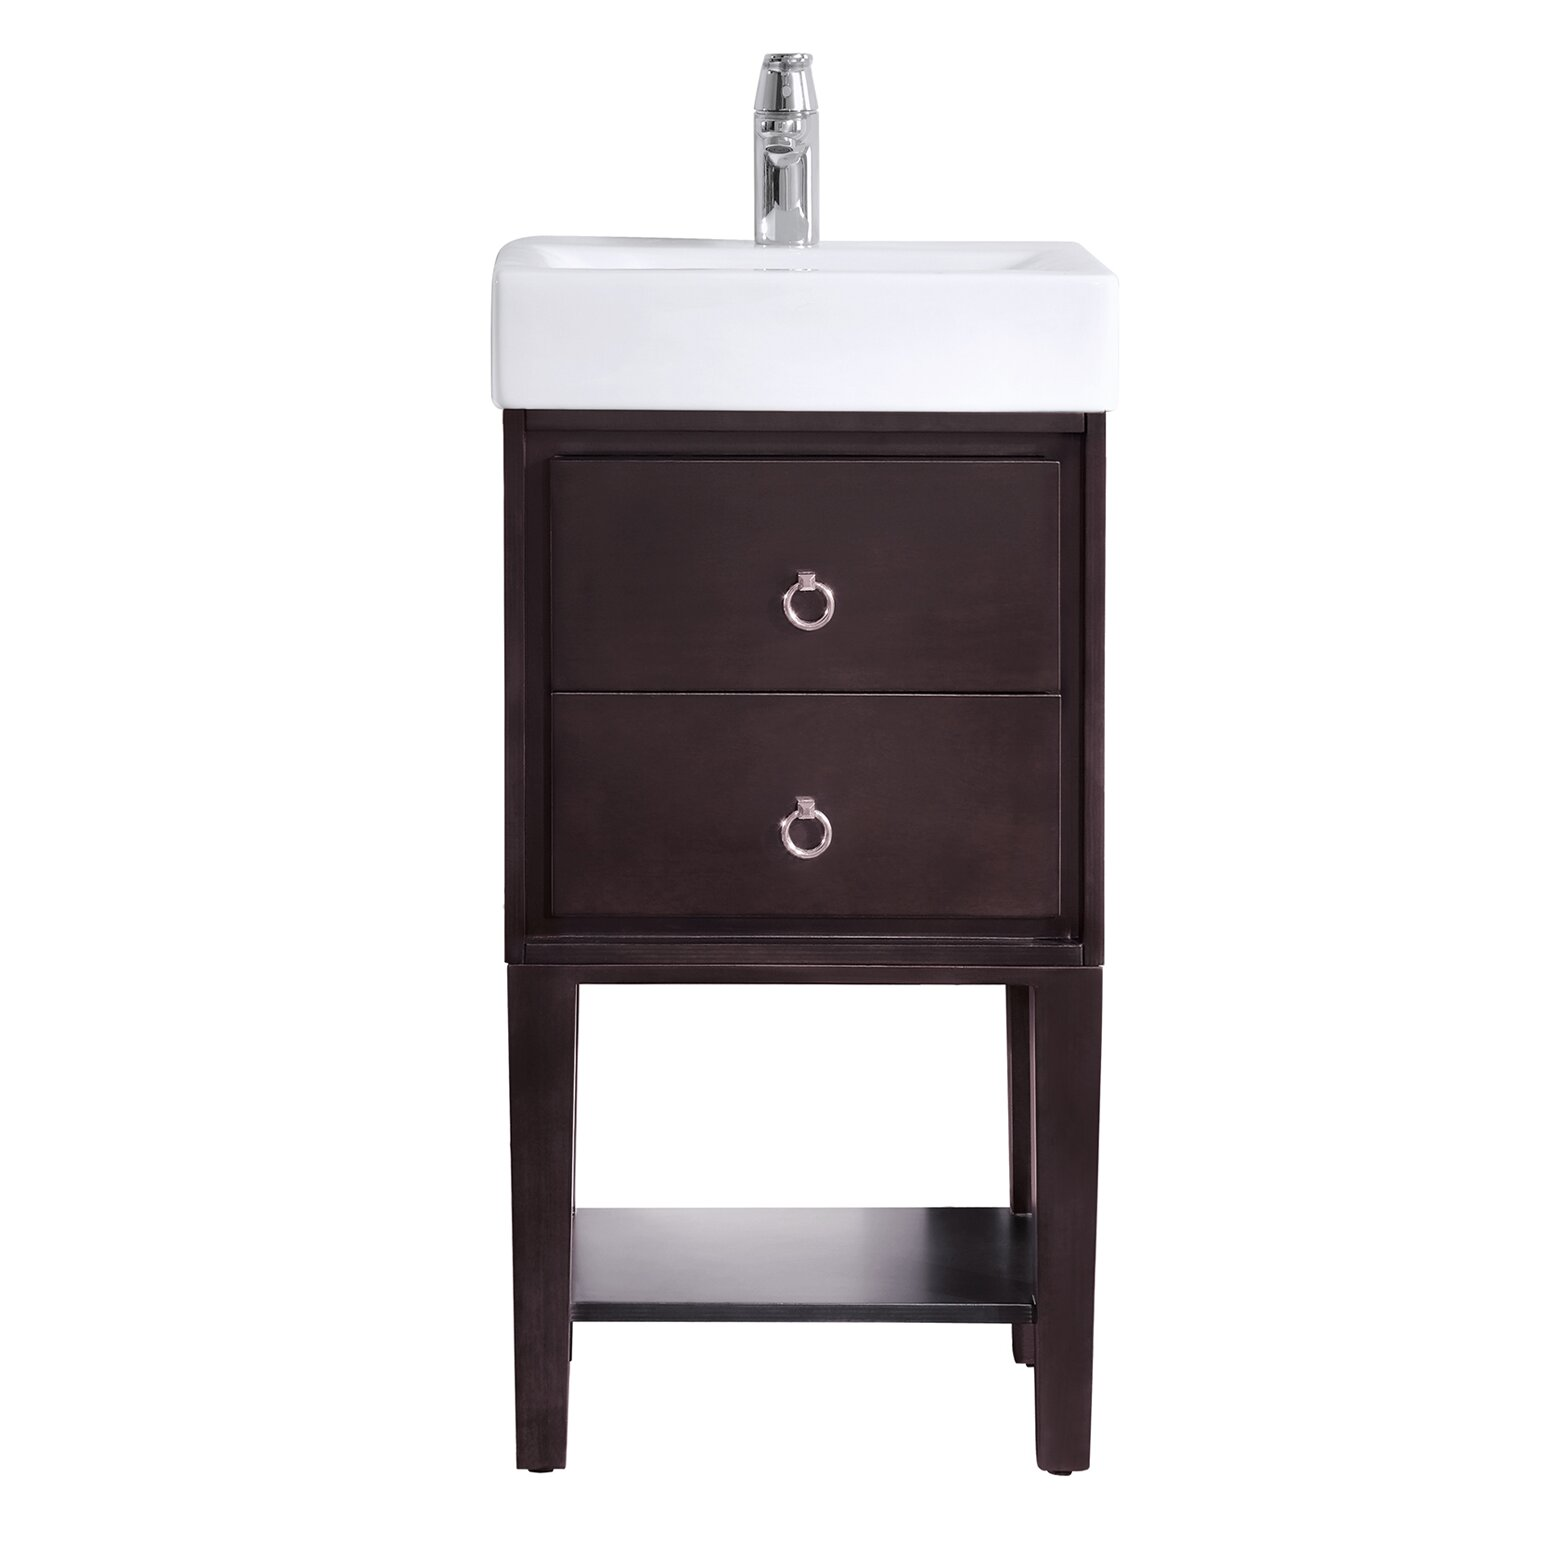 "Avanity Kent 18"" Single Modern Bathroom Vanity Set"